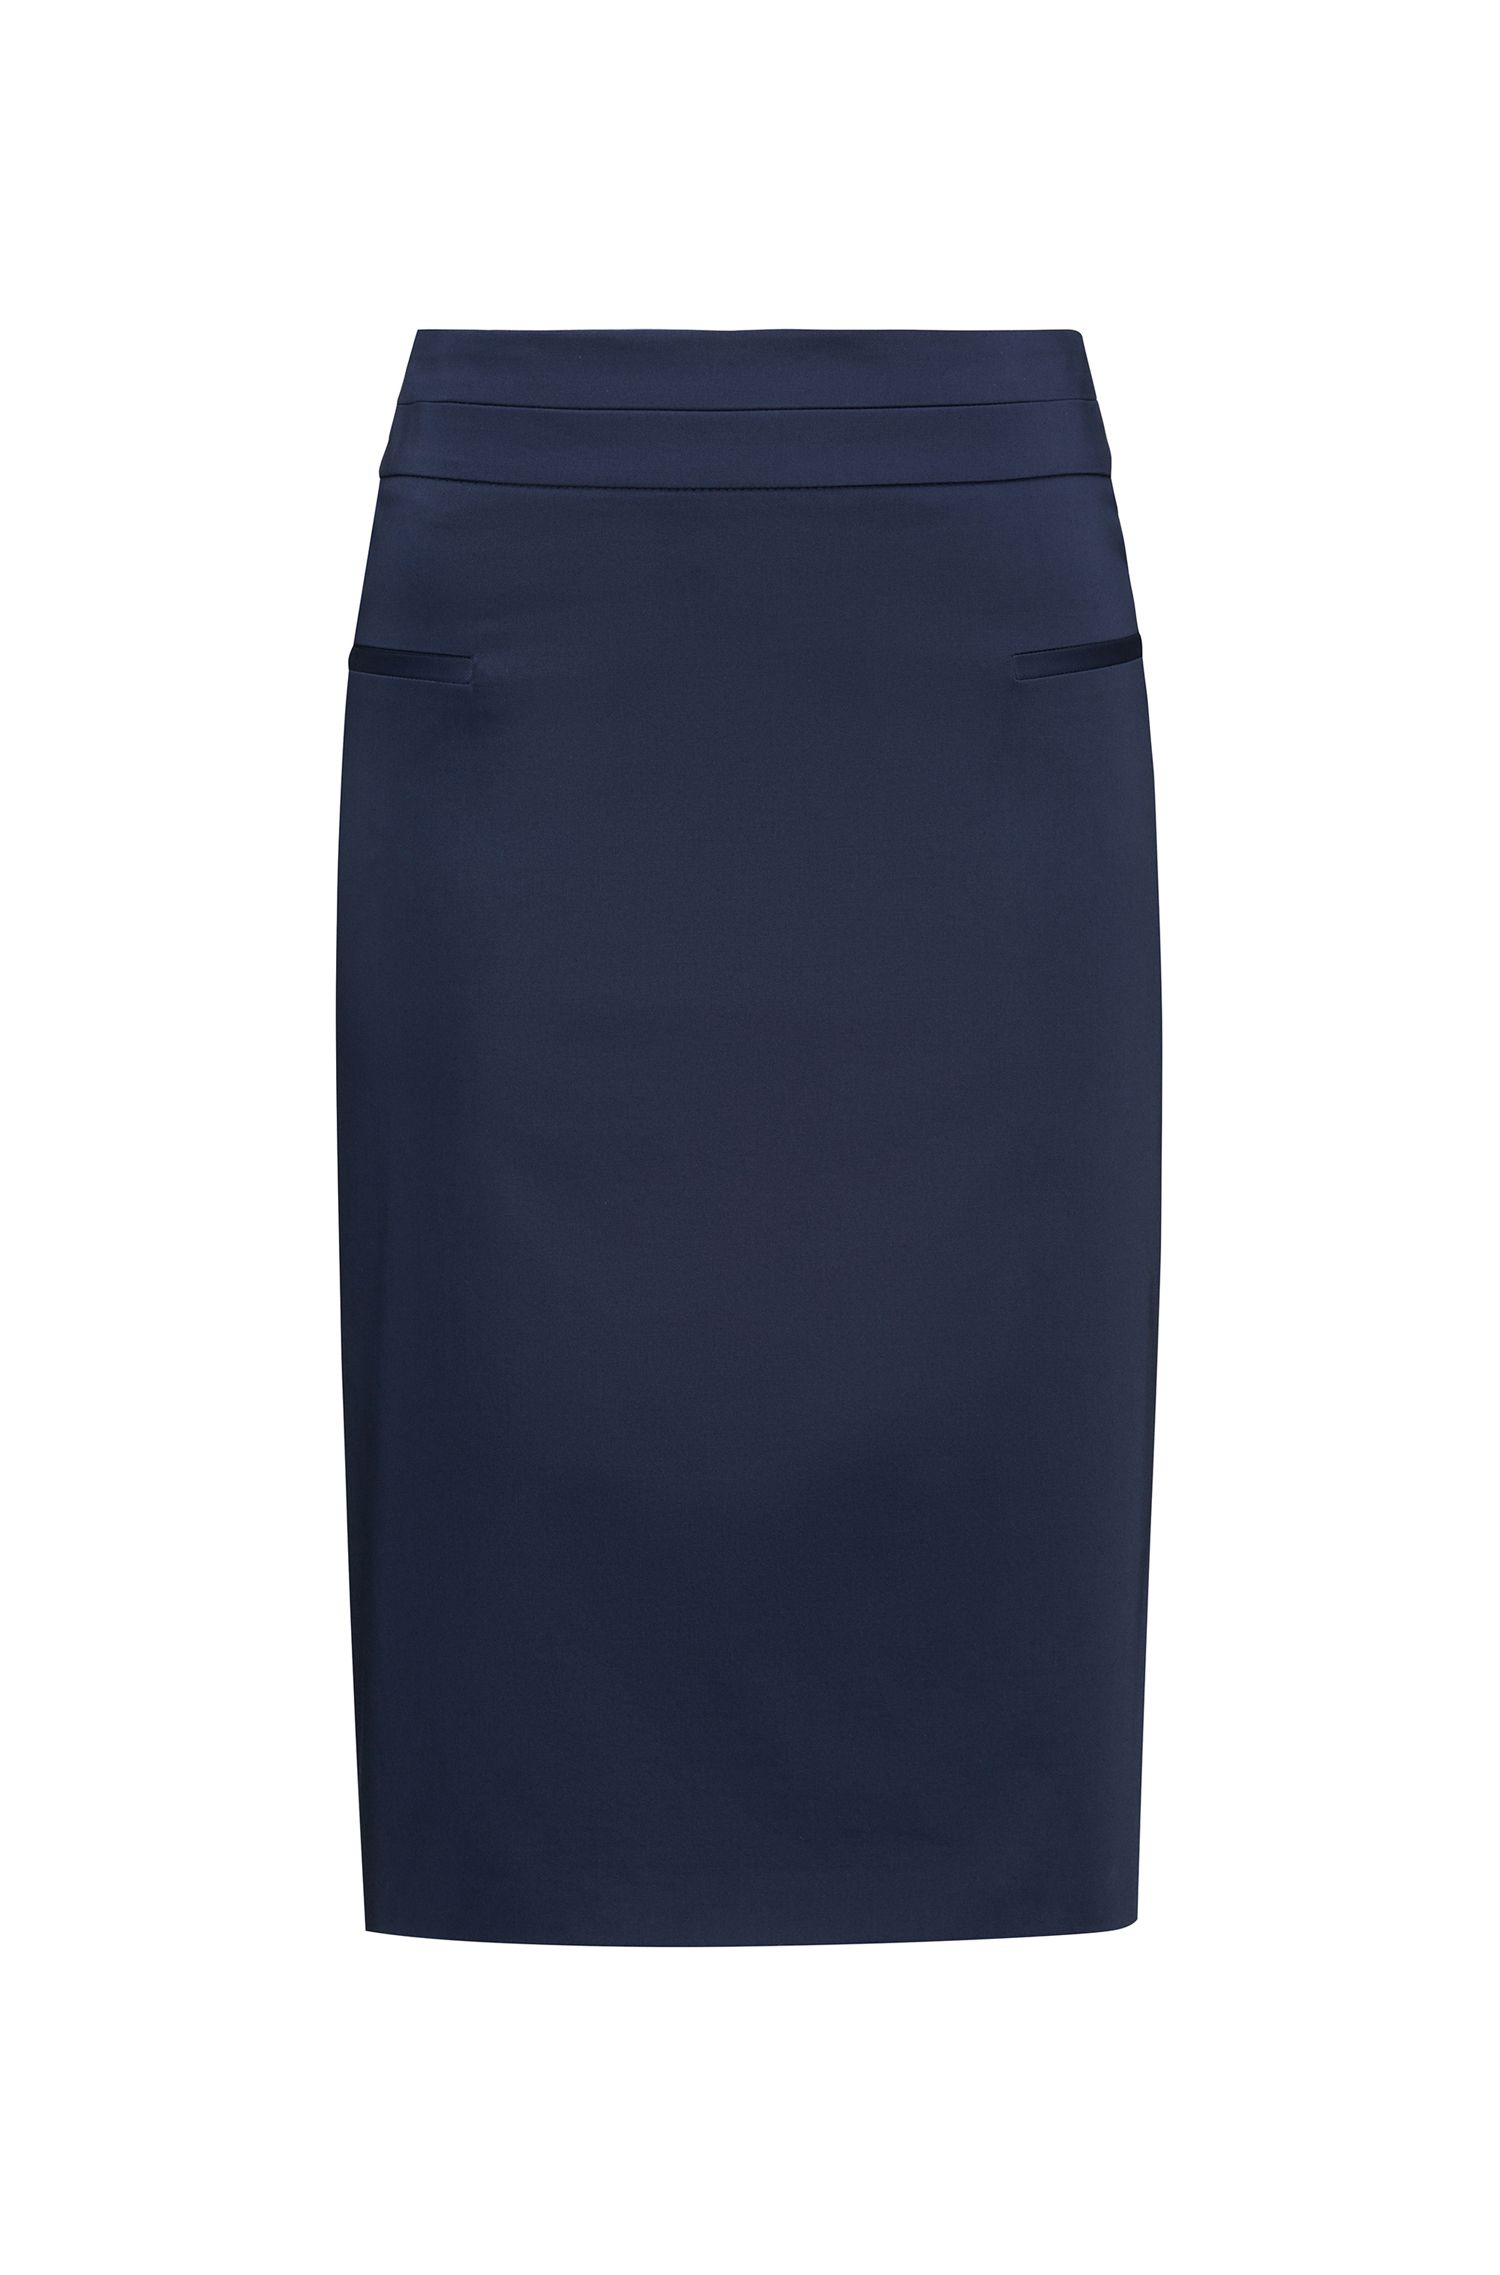 Pocket-detail pencil skirt in stretch cotton